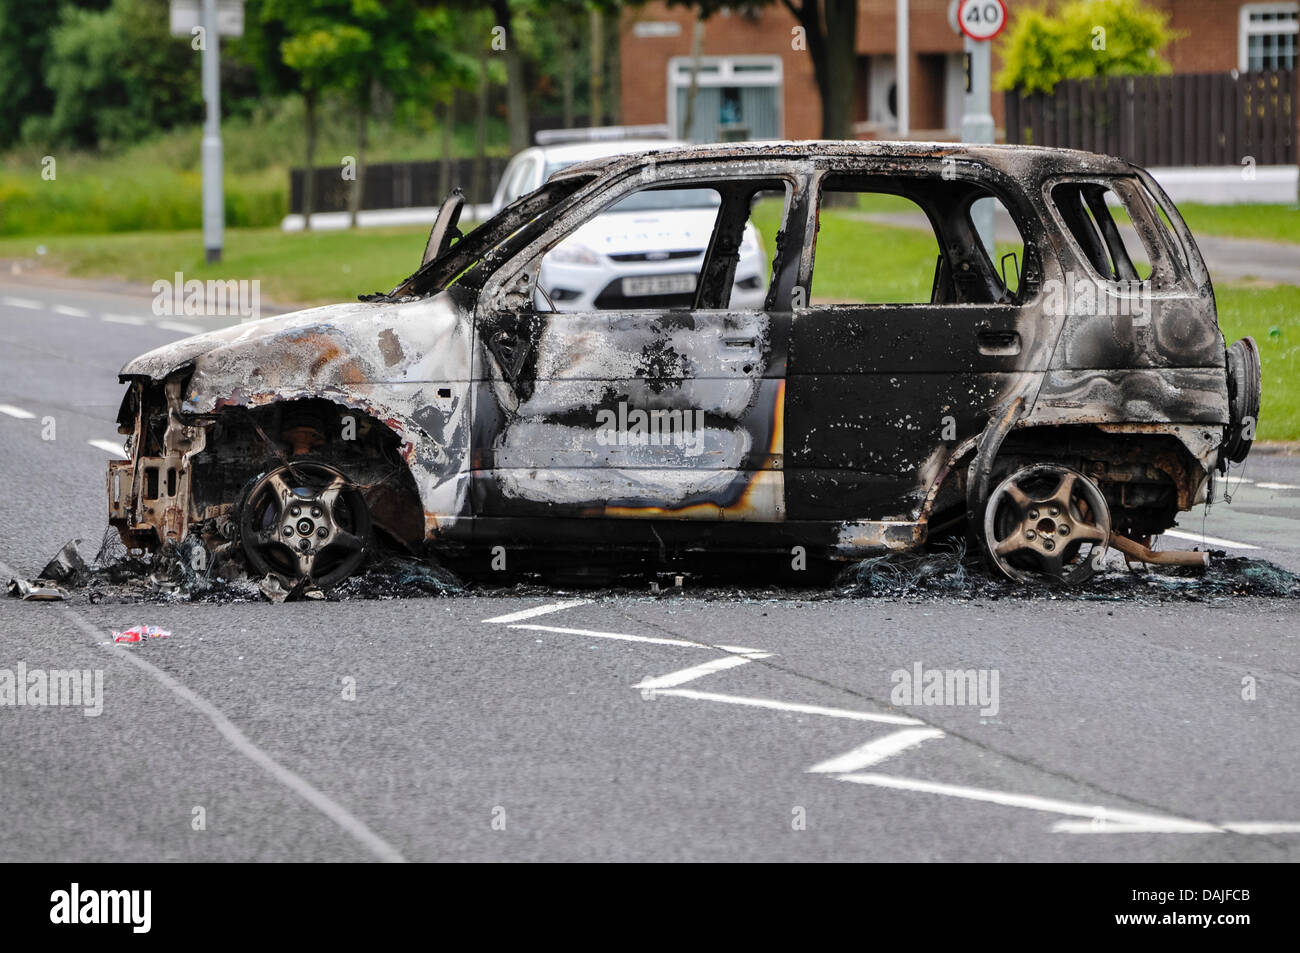 Newtownabbey, Northern Ireland. 15th July 2013 - A PSNI police car sits behind a burnt out car following riots in - Stock Image